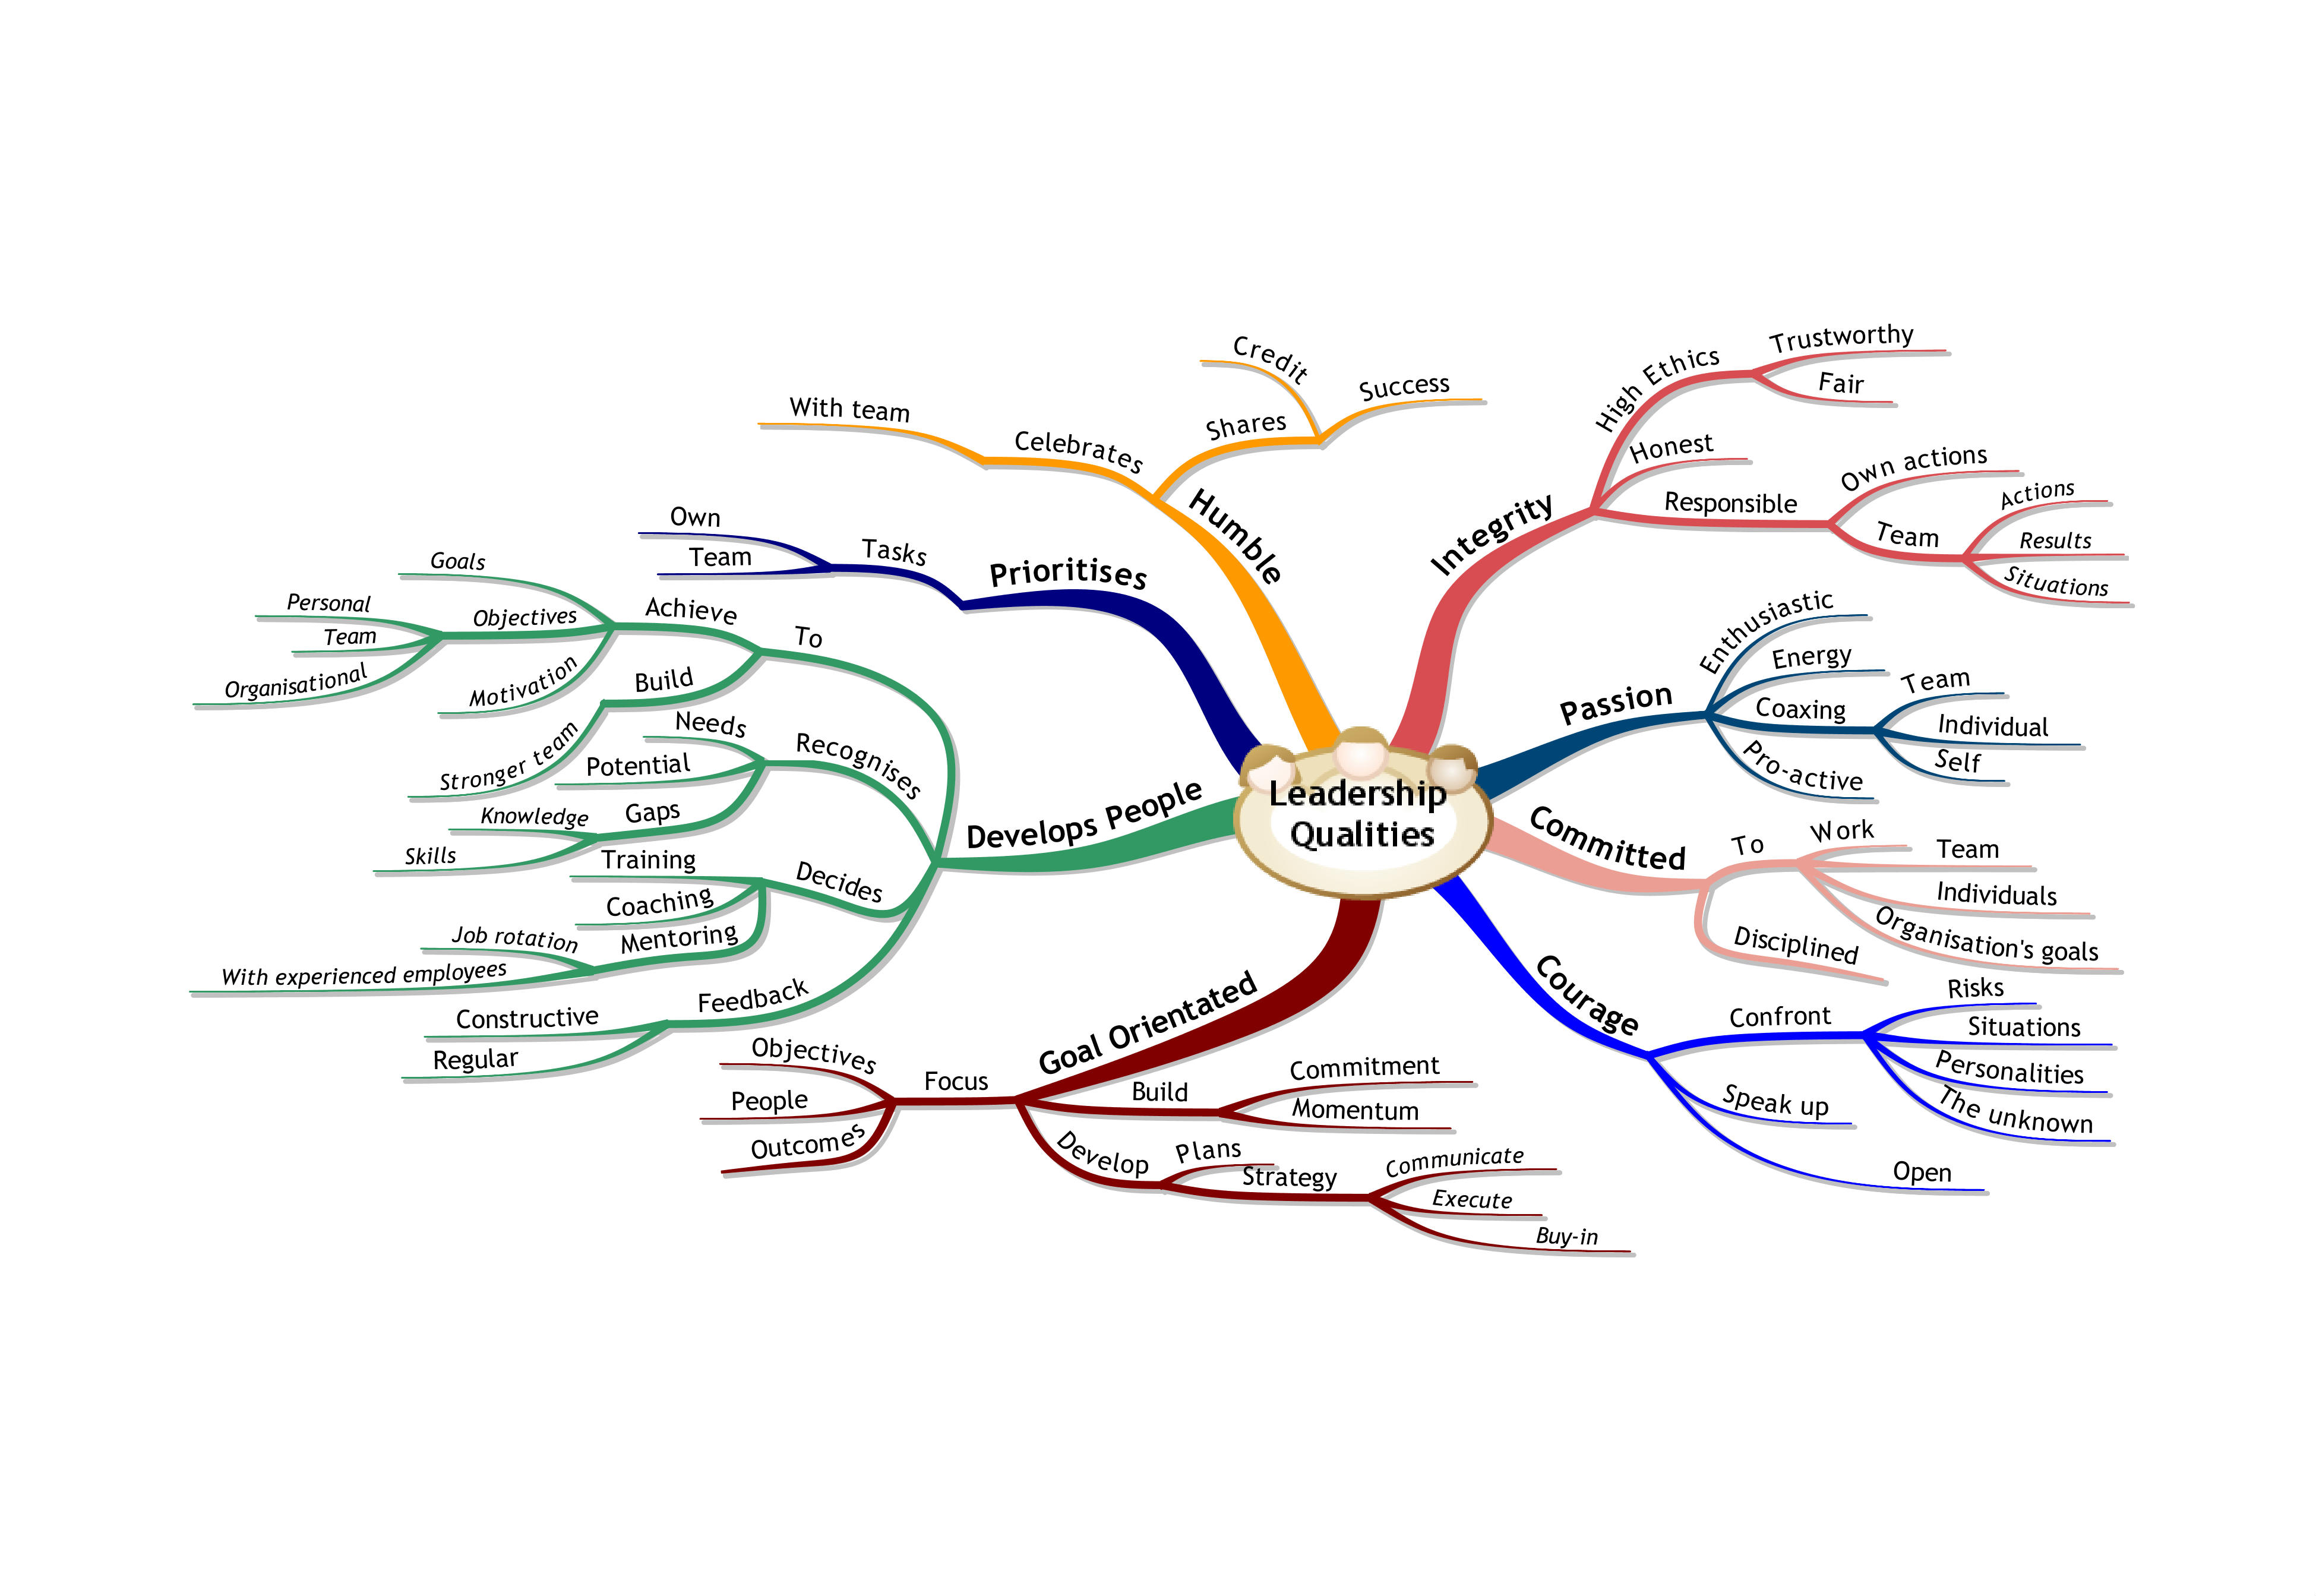 leadership qualities mind map training leadership qualities mind map